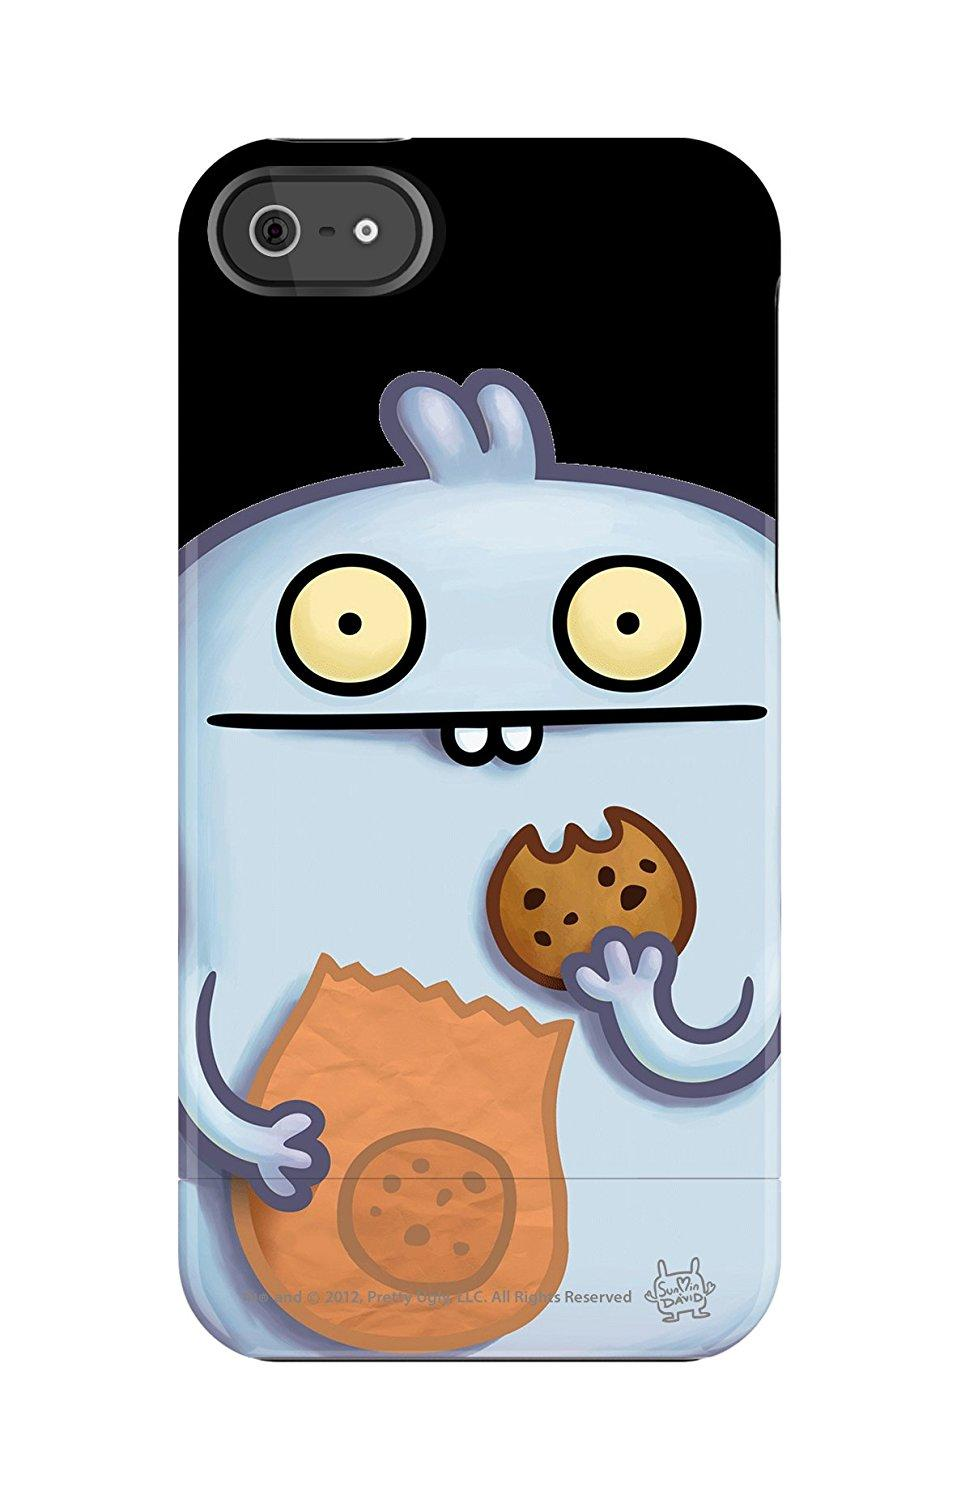 Uncommon Uglydoll Babo's Cookie Capsule Case Apple iPhone 5/5S